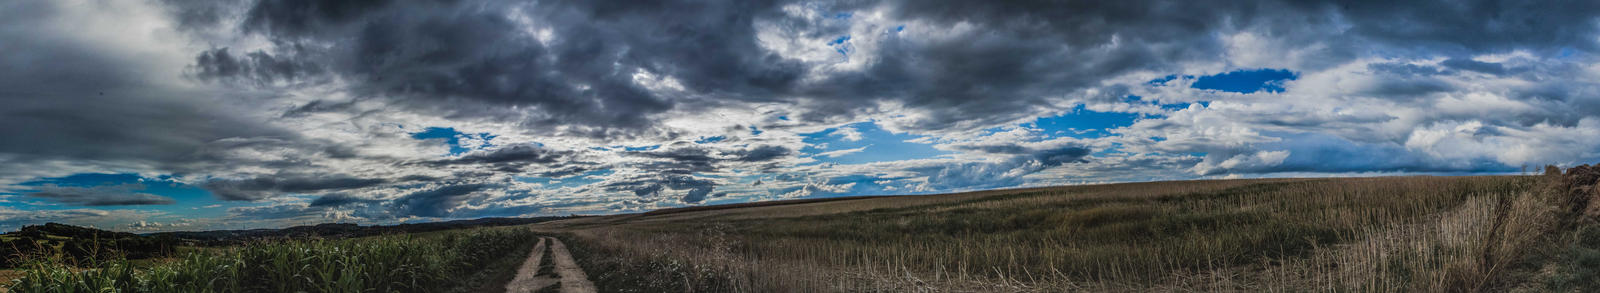 Country pano by YgsenddPhoto